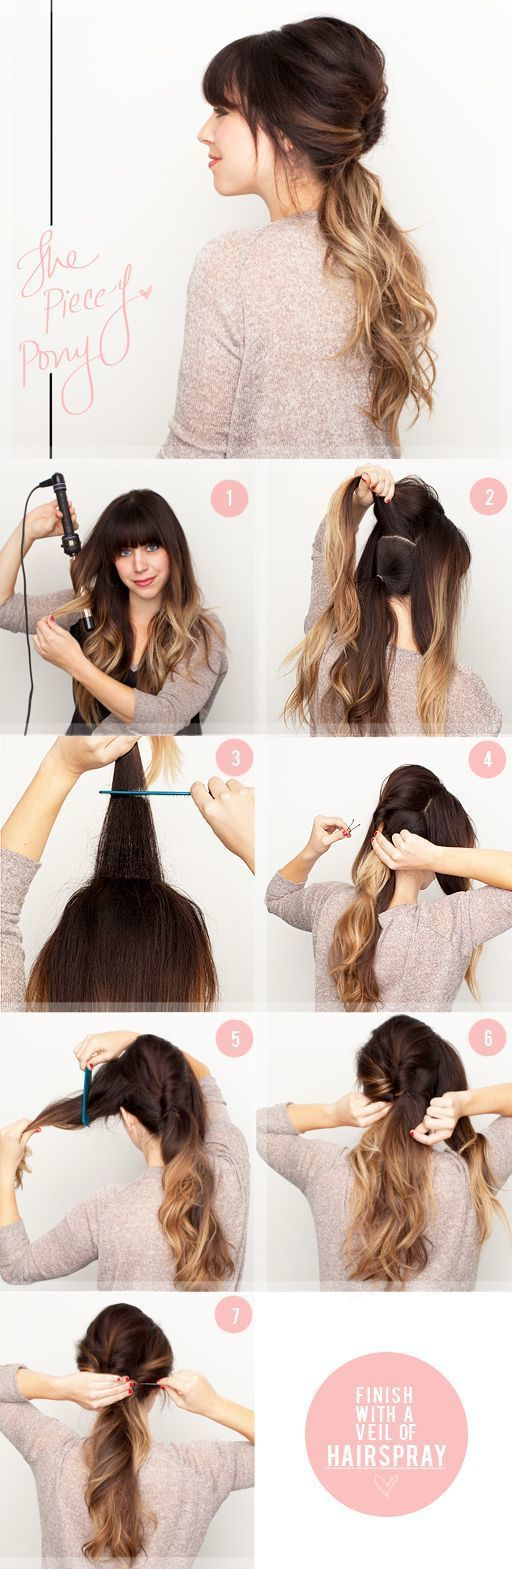 Hairstyle Changer Extraordinary 20 Easy Hairstyles For Women Who've Got No Time #7 Is A Game